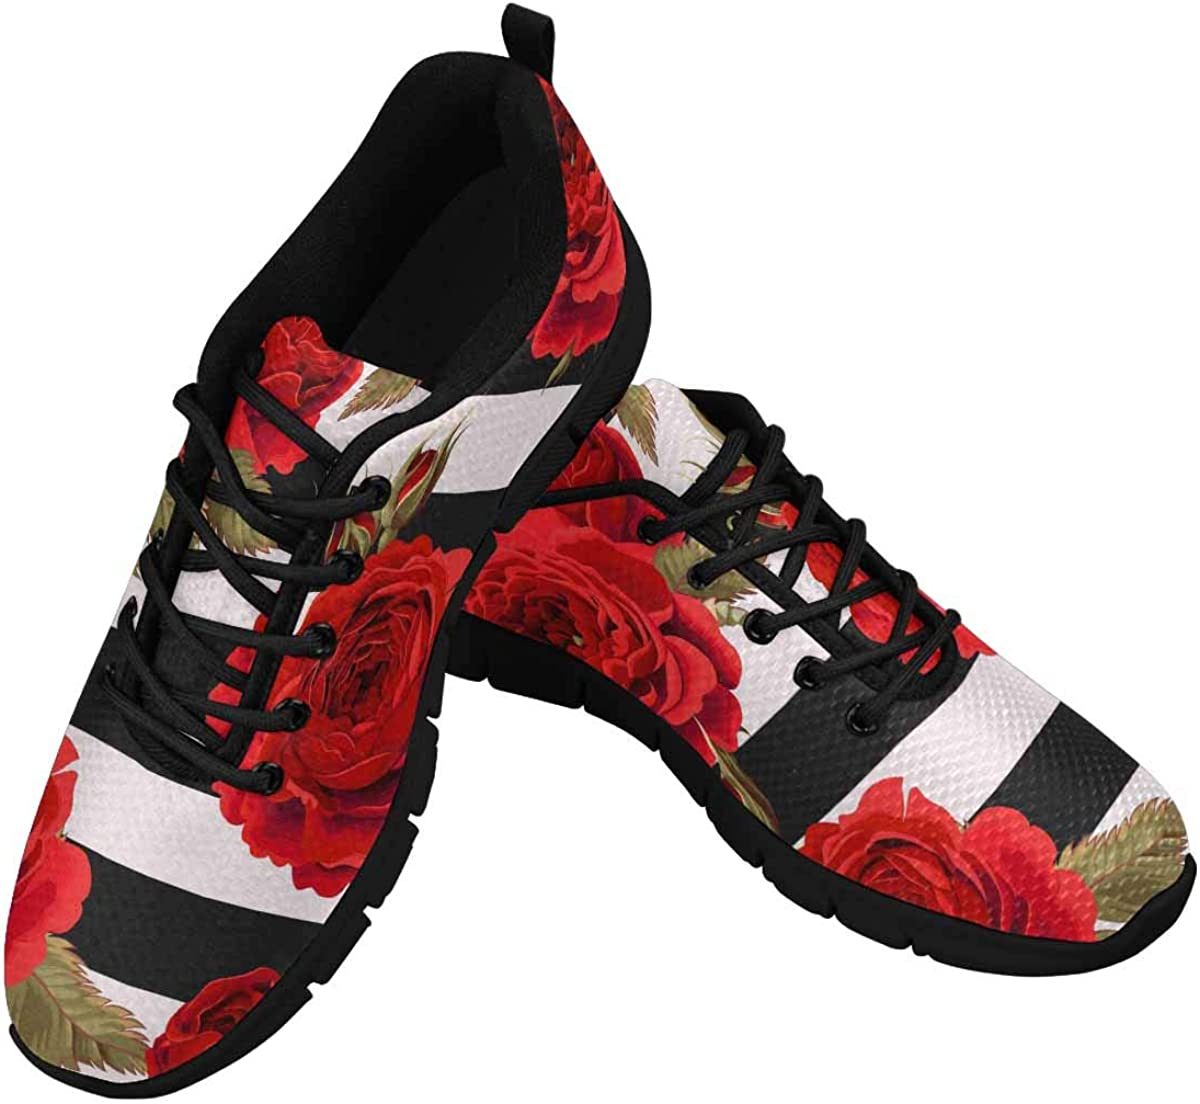 INTERESTPRINT Red Roses Flowers Women's Athletic Walking Running Sneakers Comfortable Lightweight Shoes